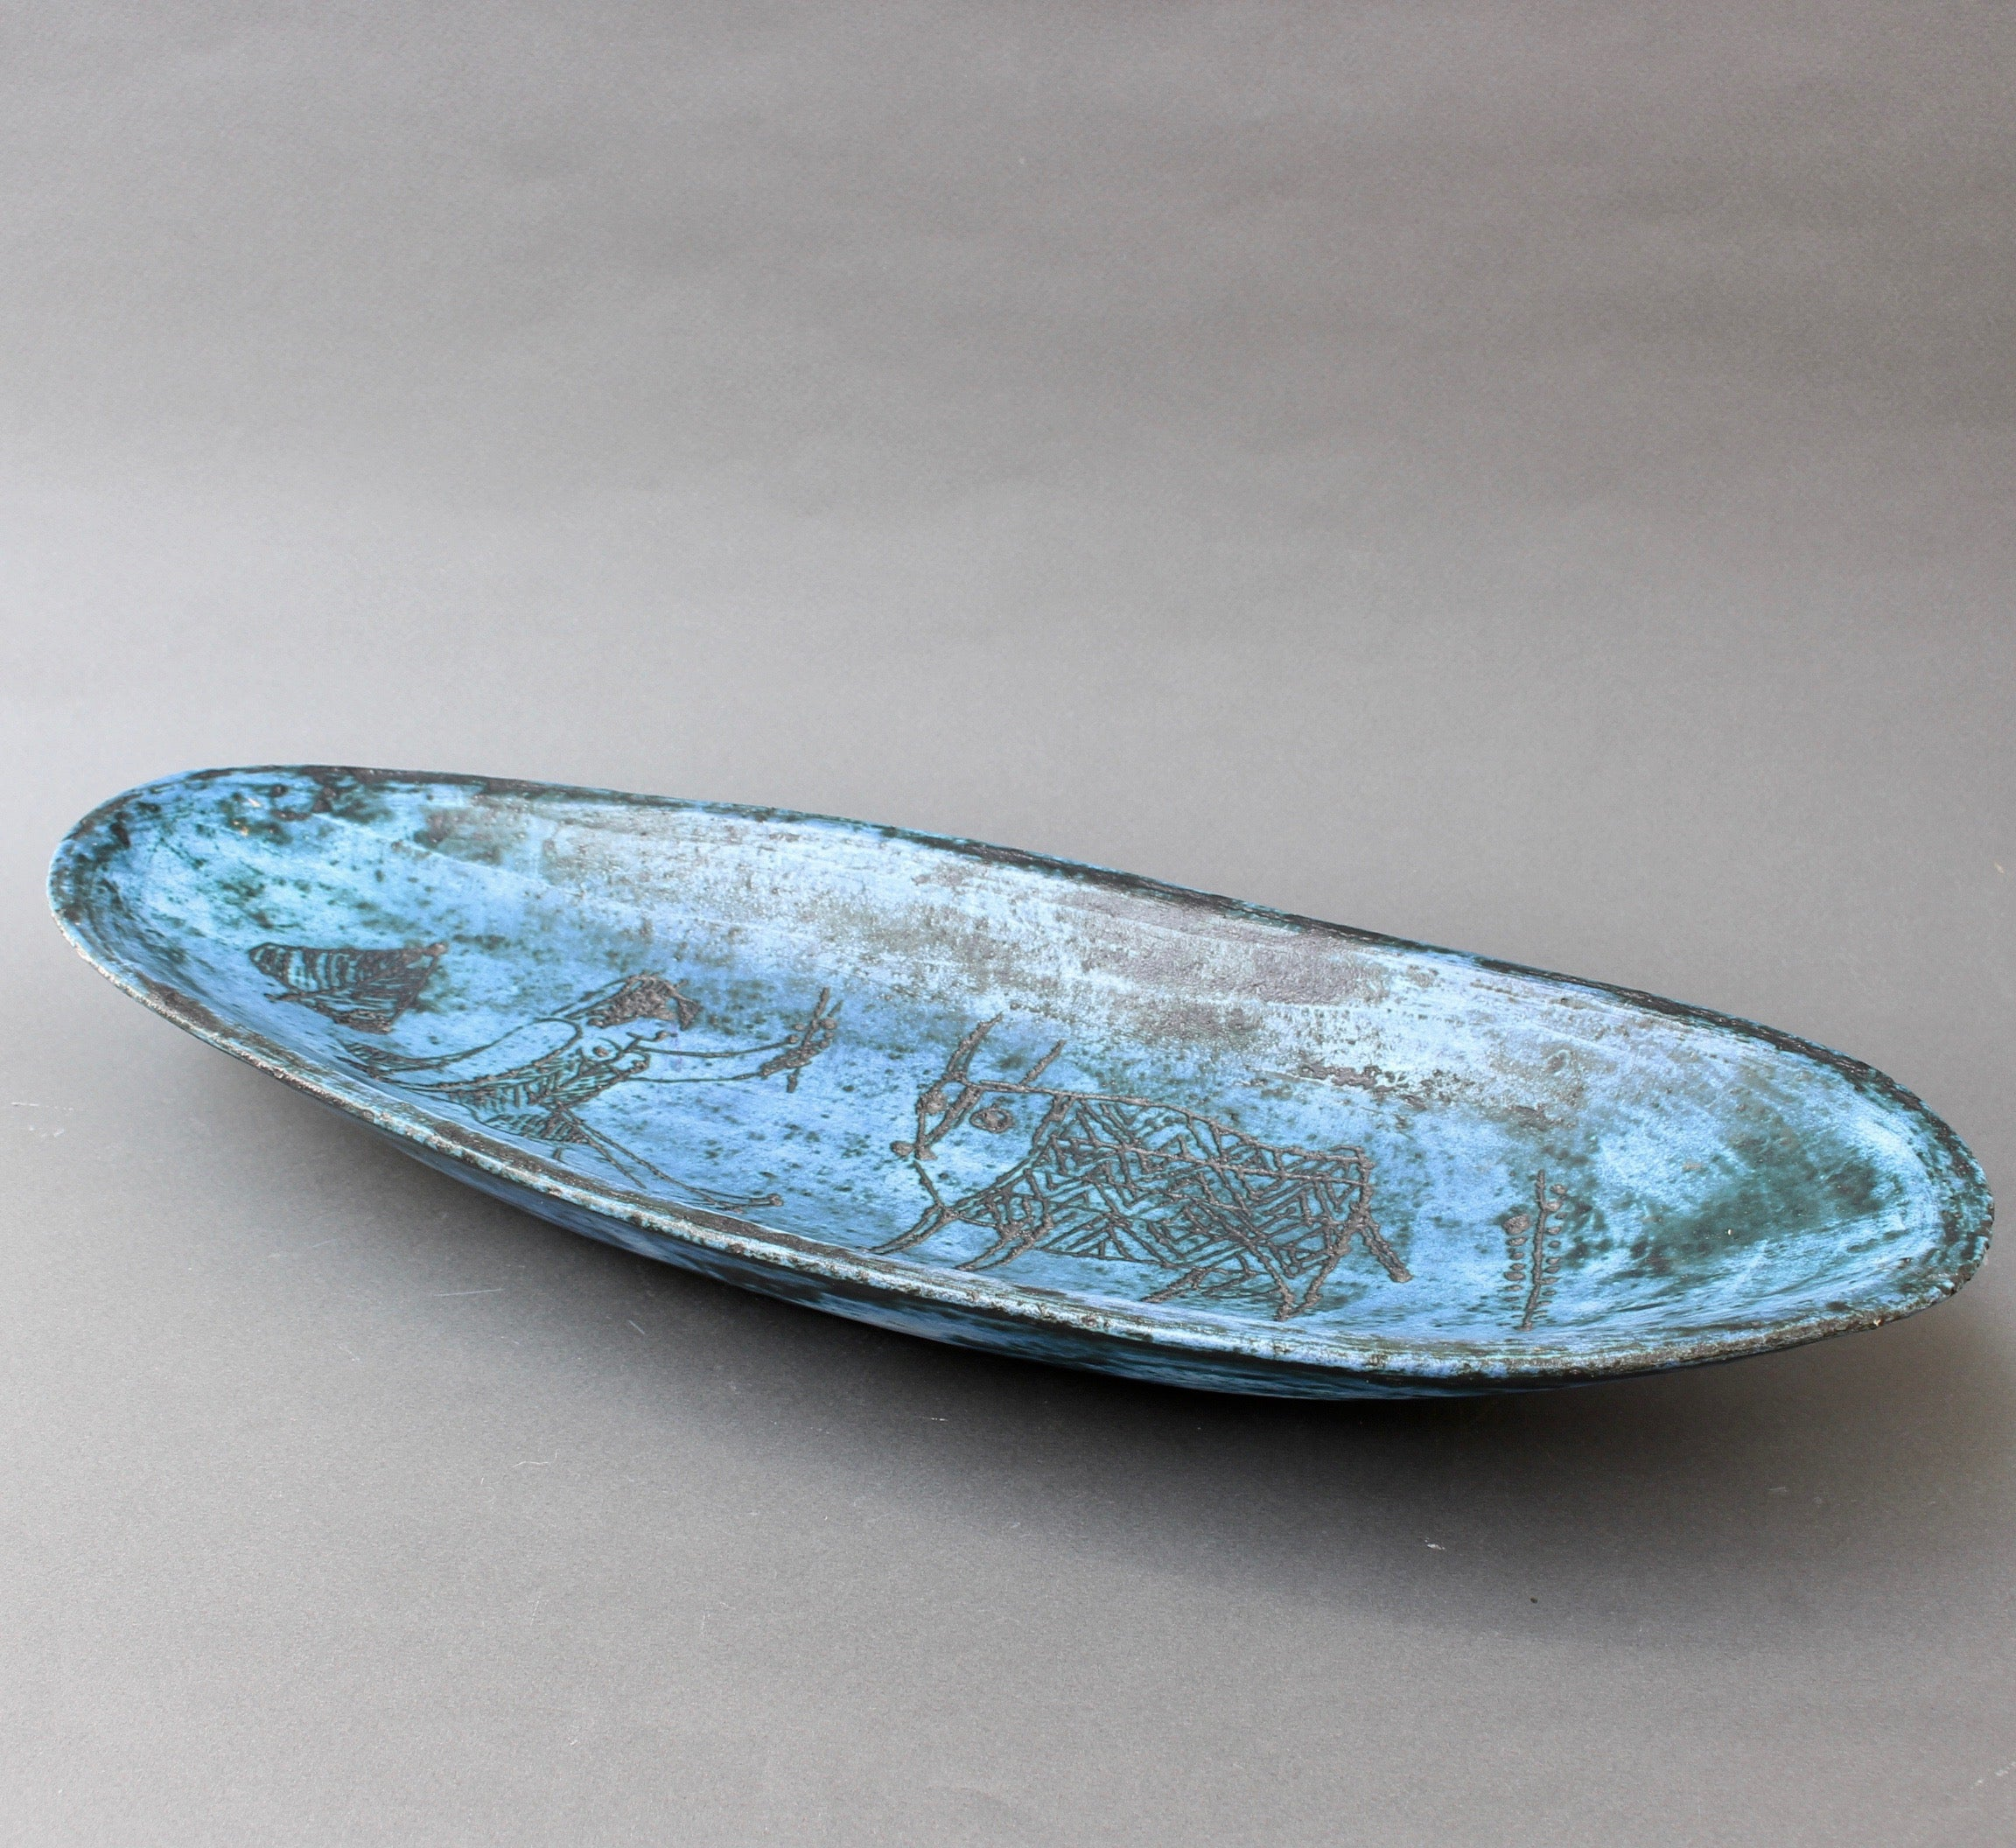 Ceramic Decorative Tray by Jacques Blin (circa 1950s)